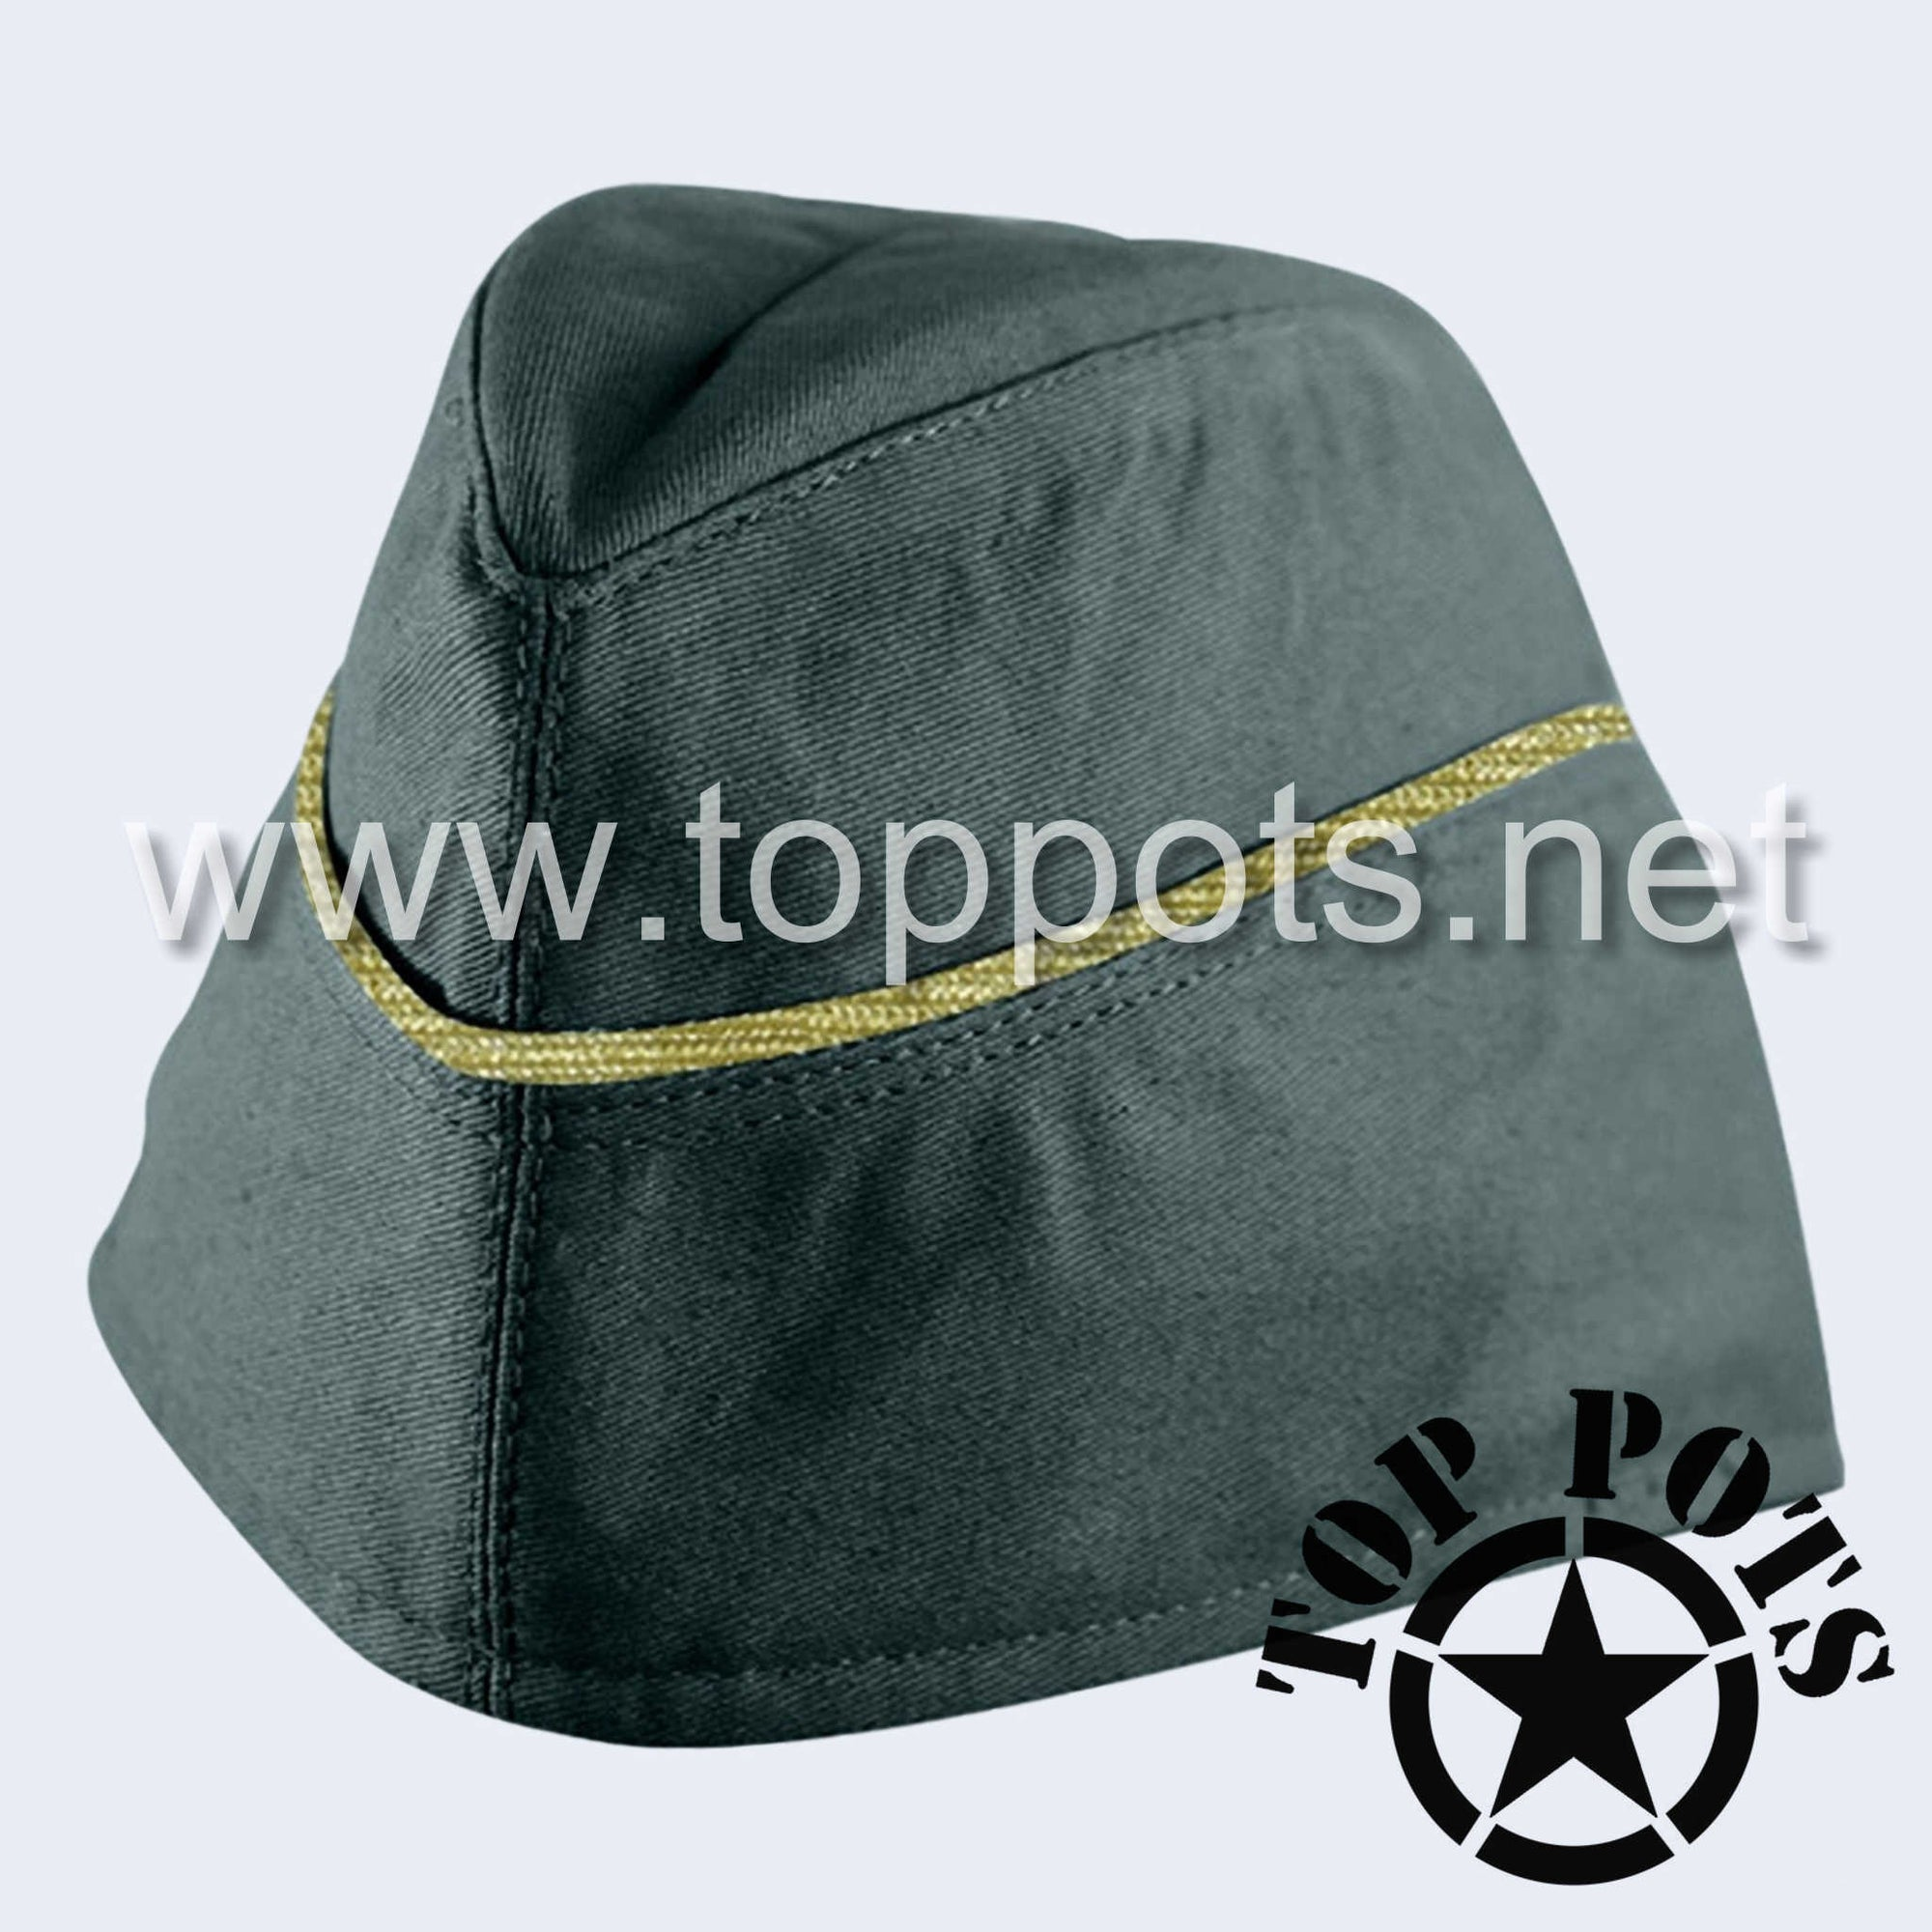 WWII German Army M1940 Heer Wehrmacht Officer Uniform HBT Summer Uniform Overseas Side Cap Reed Green - General